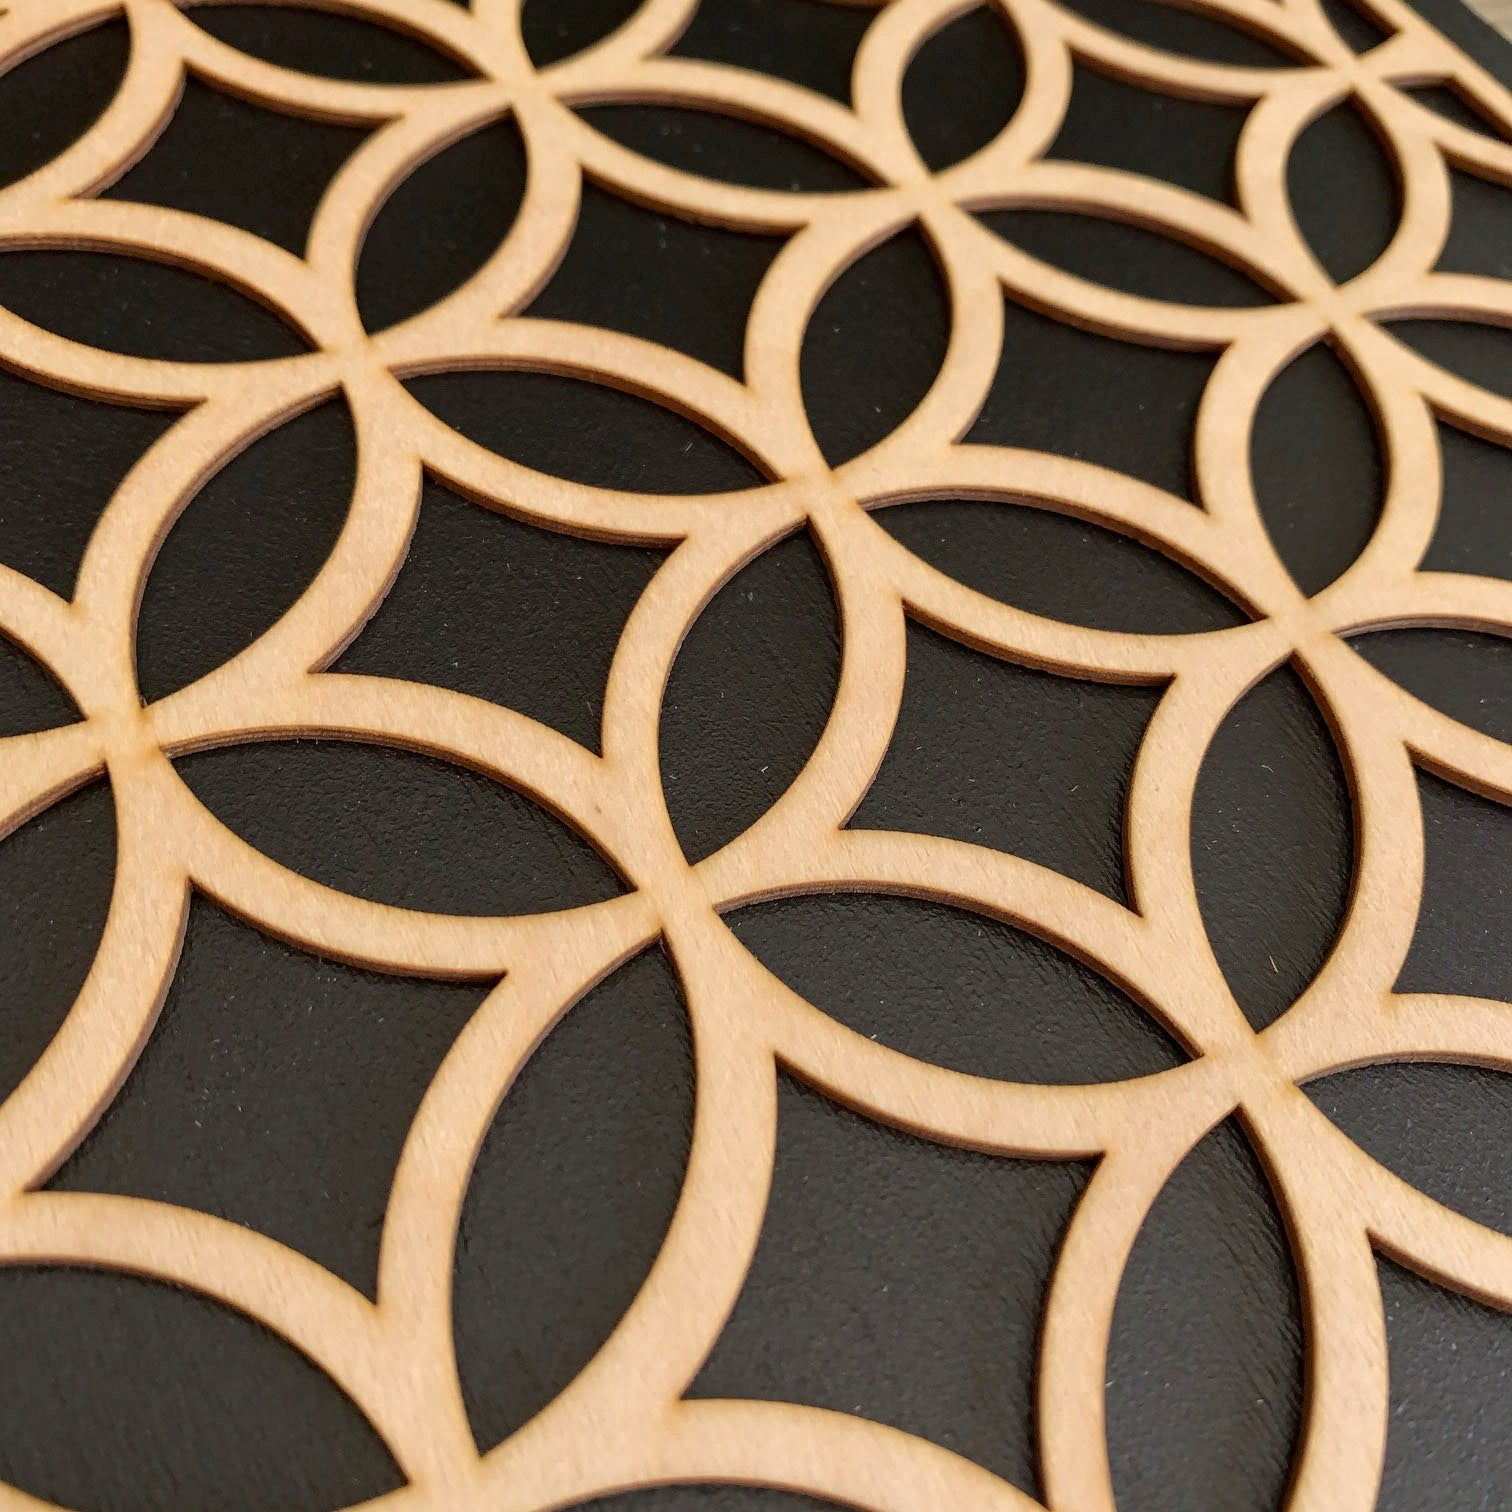 Ellipsed Circles wooden inlay / onlay